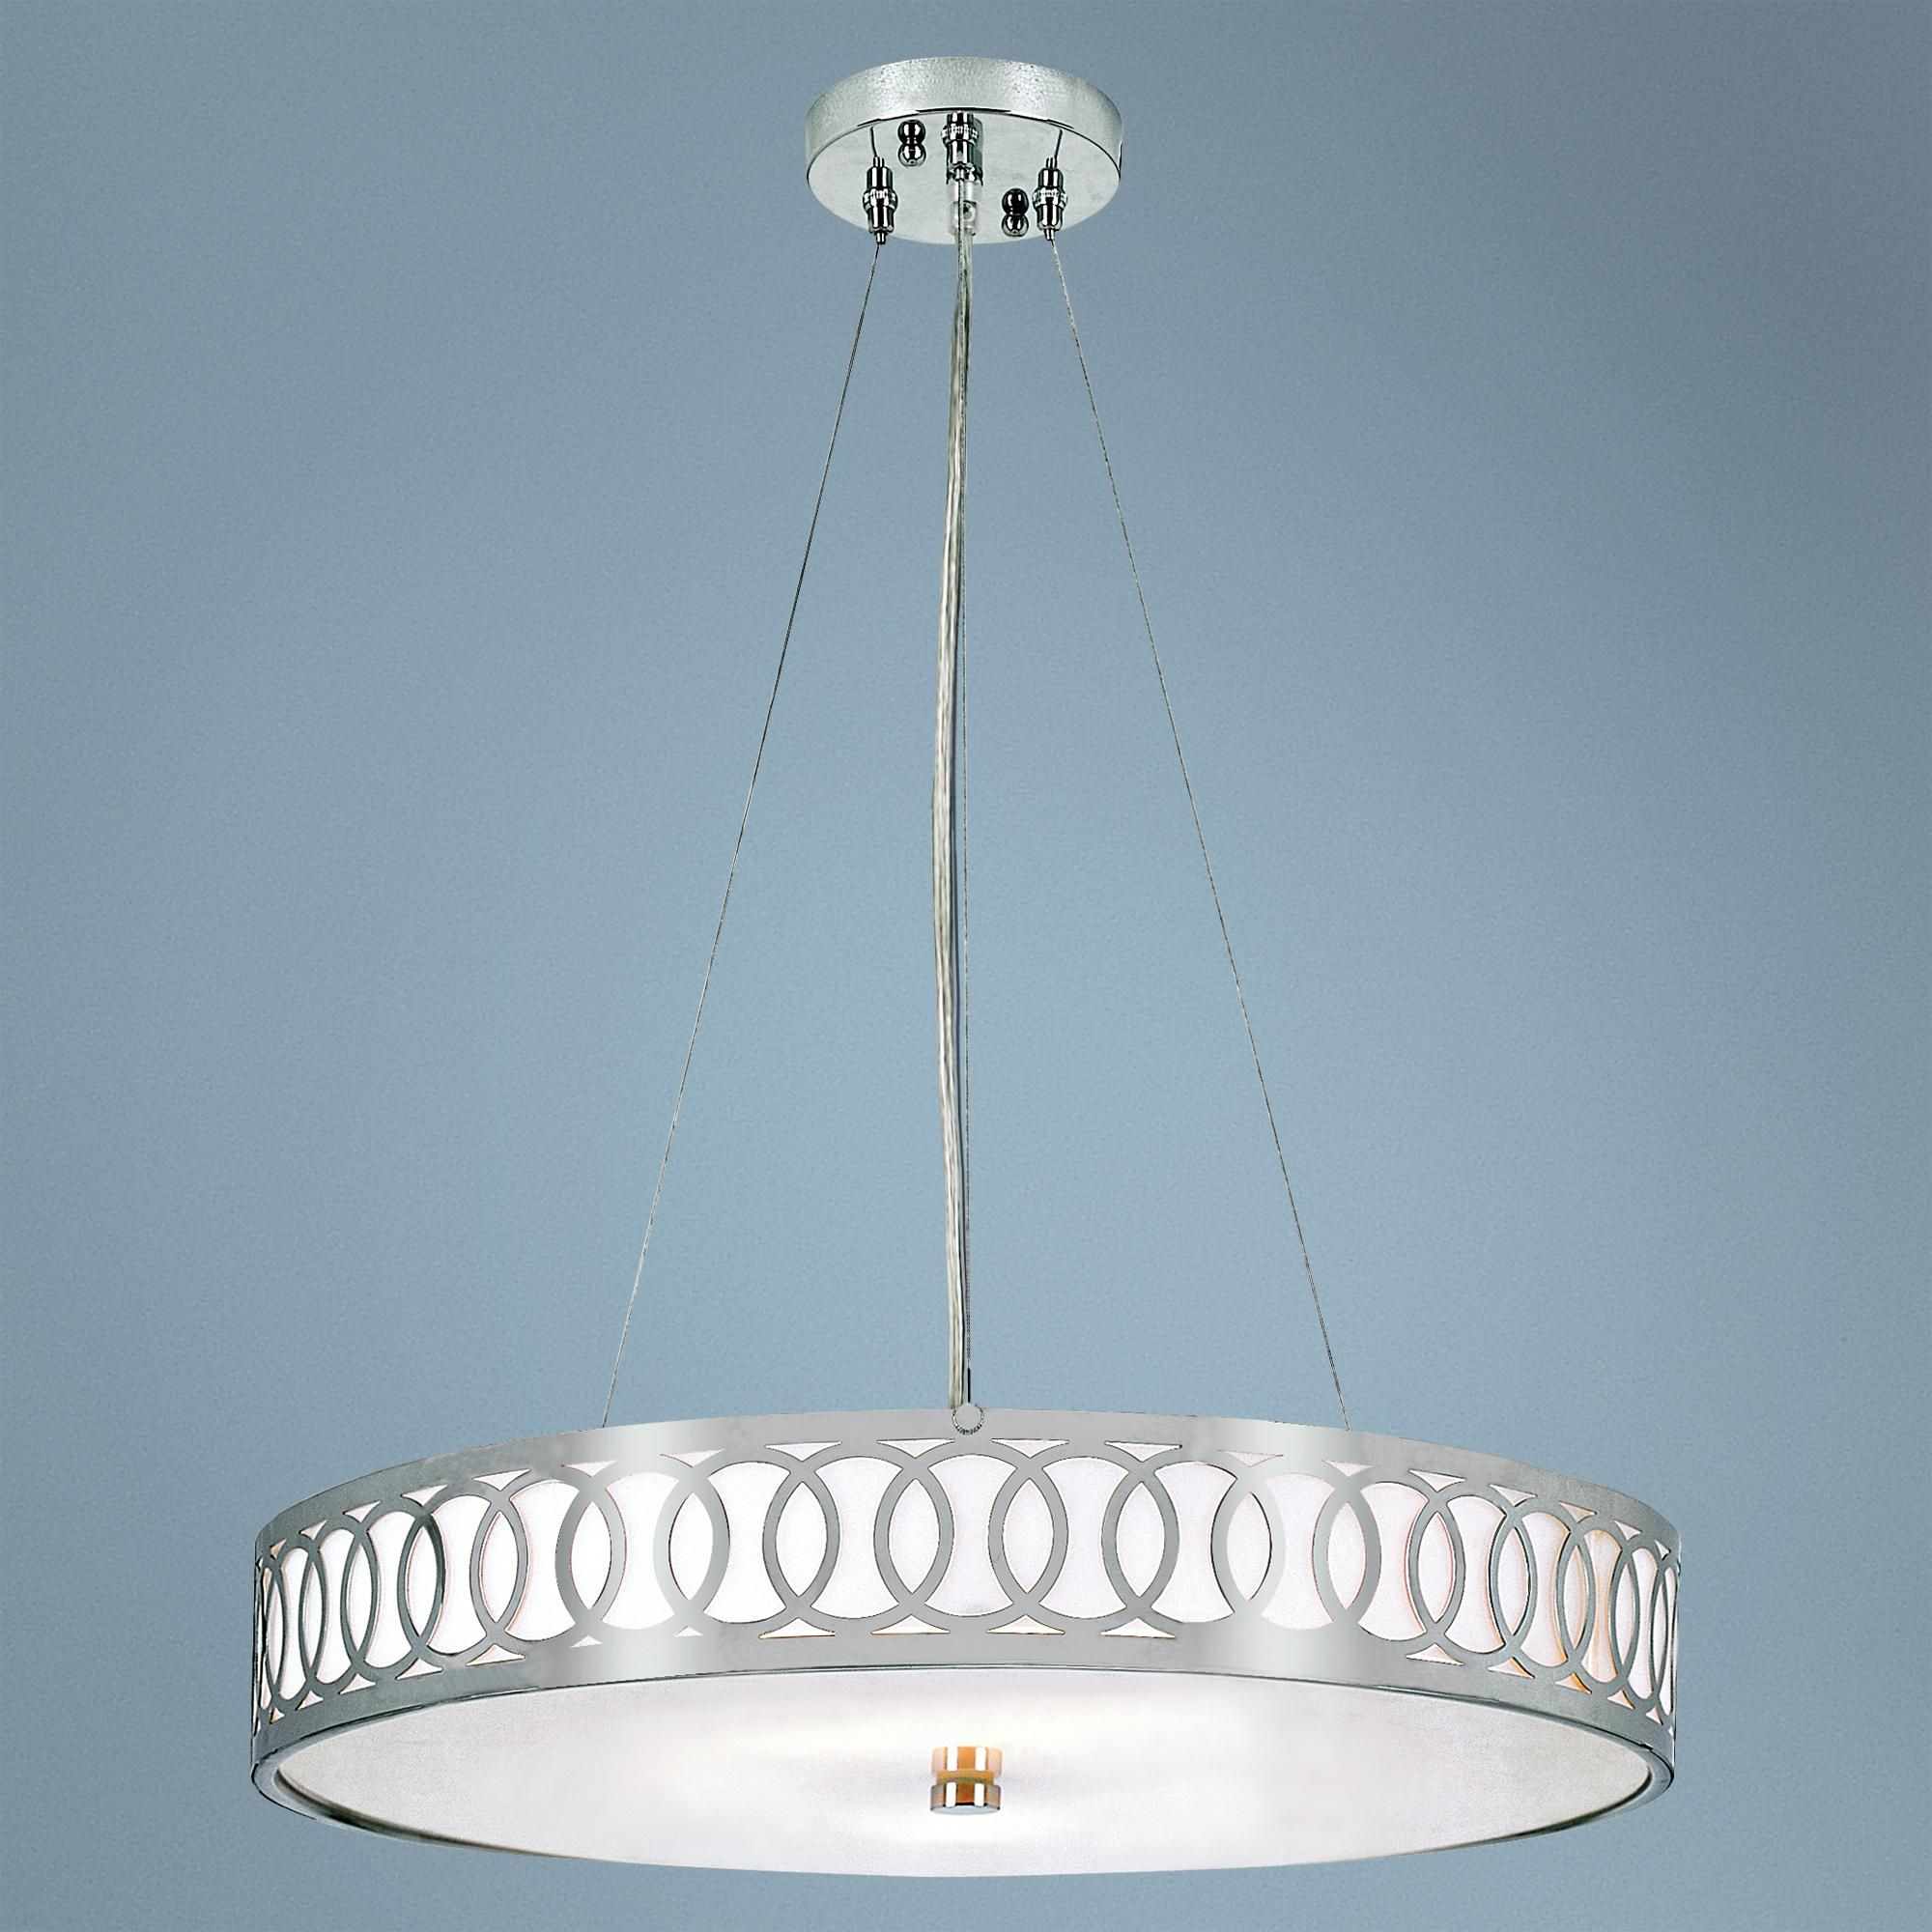 Chandelier Lighting Fixtures  Beautiful, Stylish Designs  Page 17